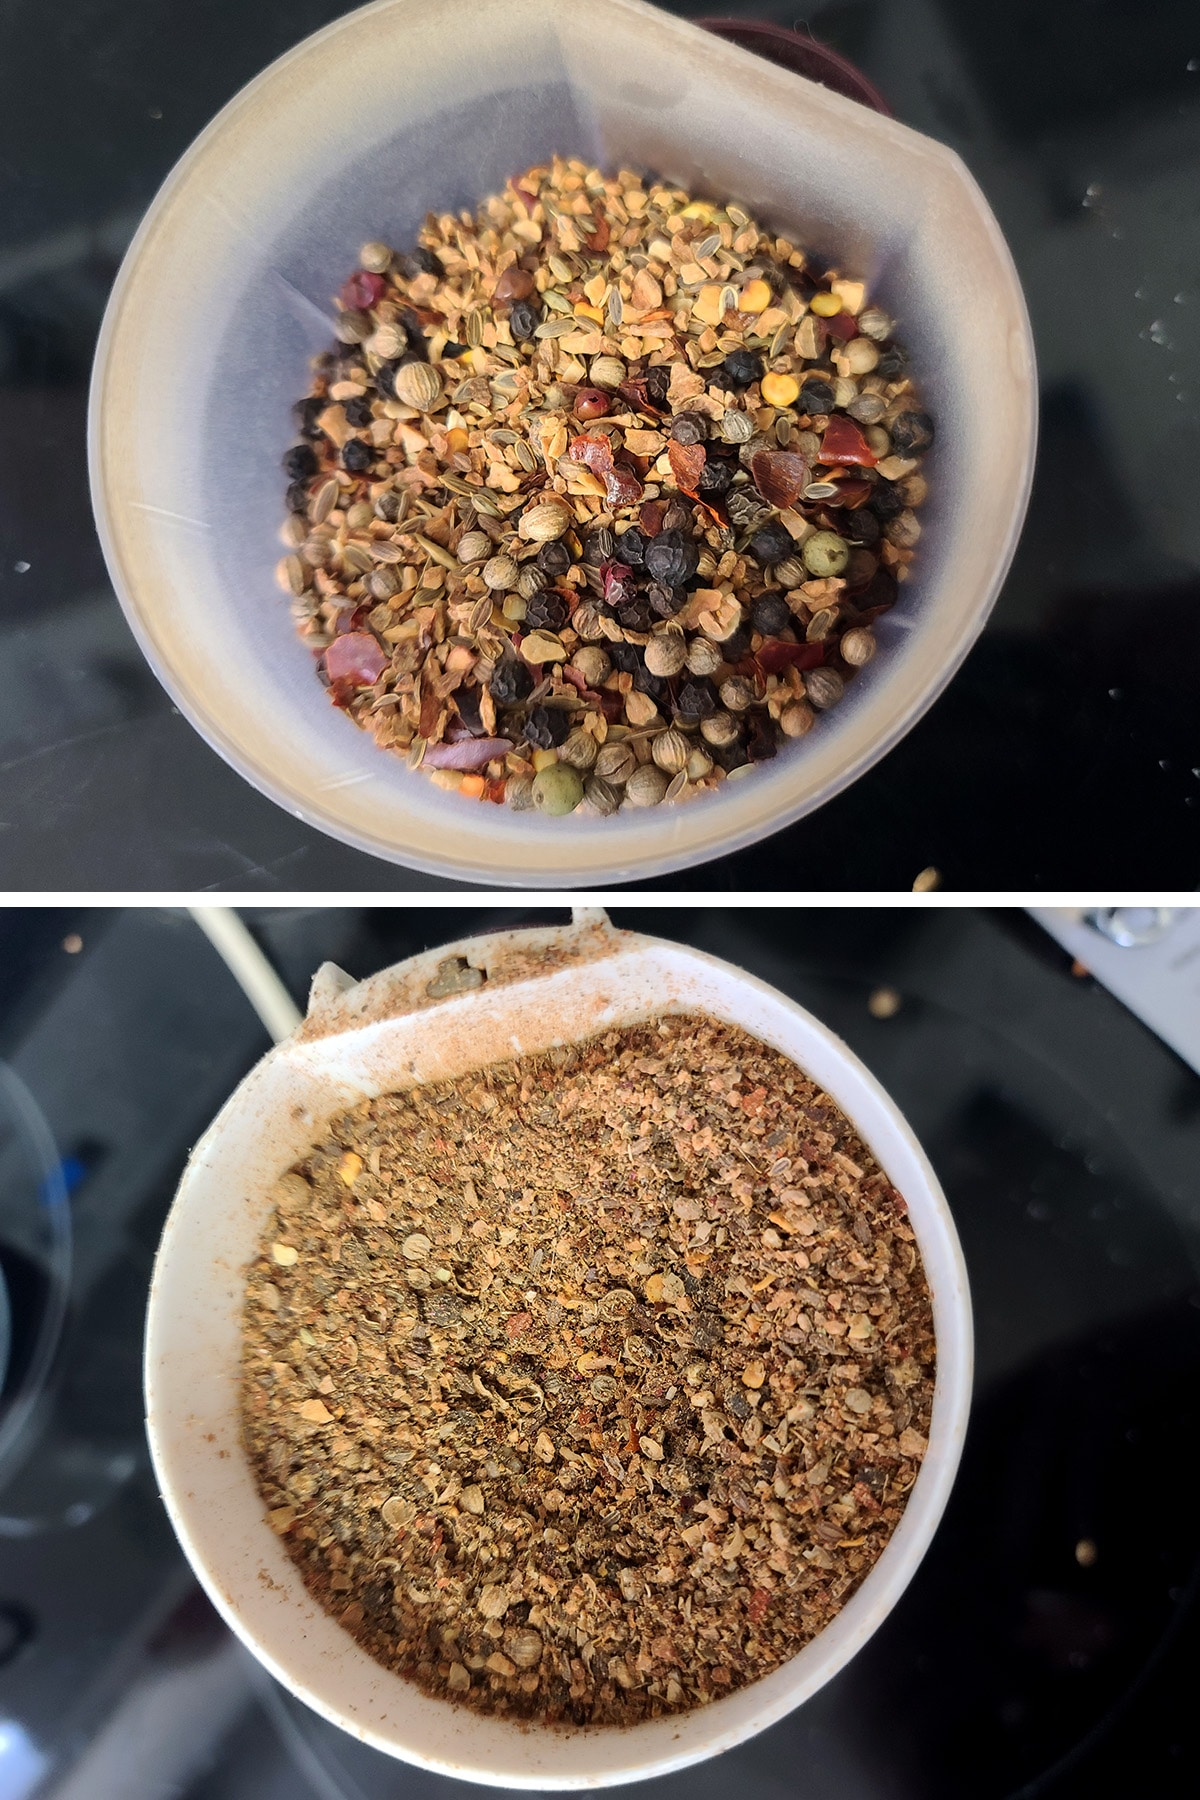 A two part compilation image showing spices in a spice grinder, before and after being ground down.